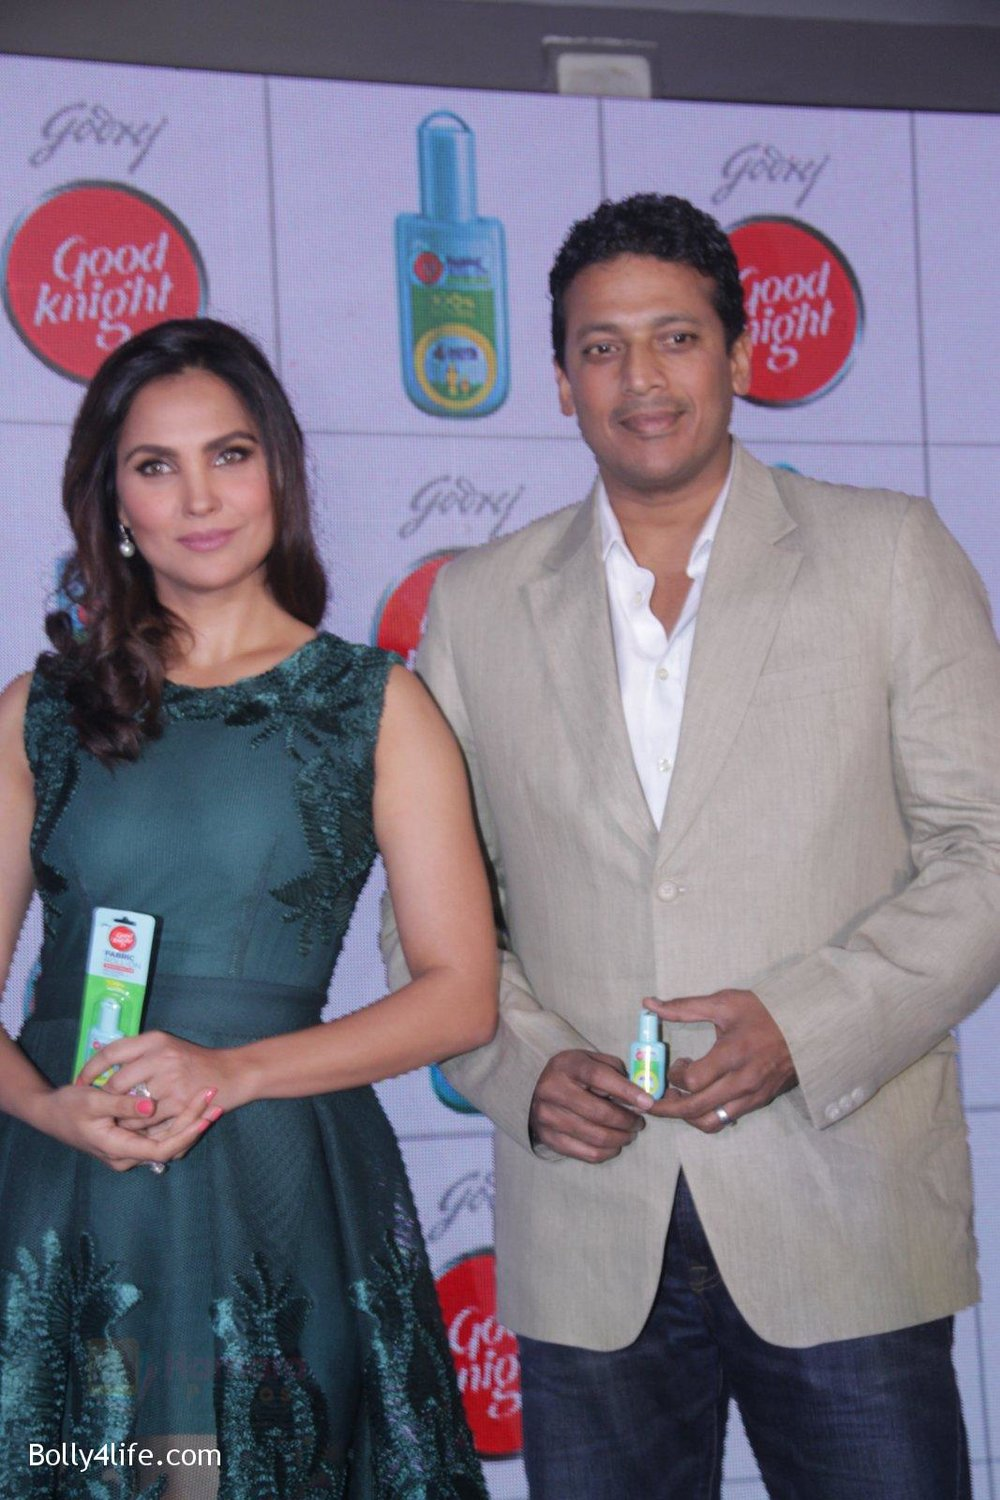 Lara-Dutta-Mahesh-Bhupathi-promotes-Good-Night-on-29th-Sept-2016-49.jpg